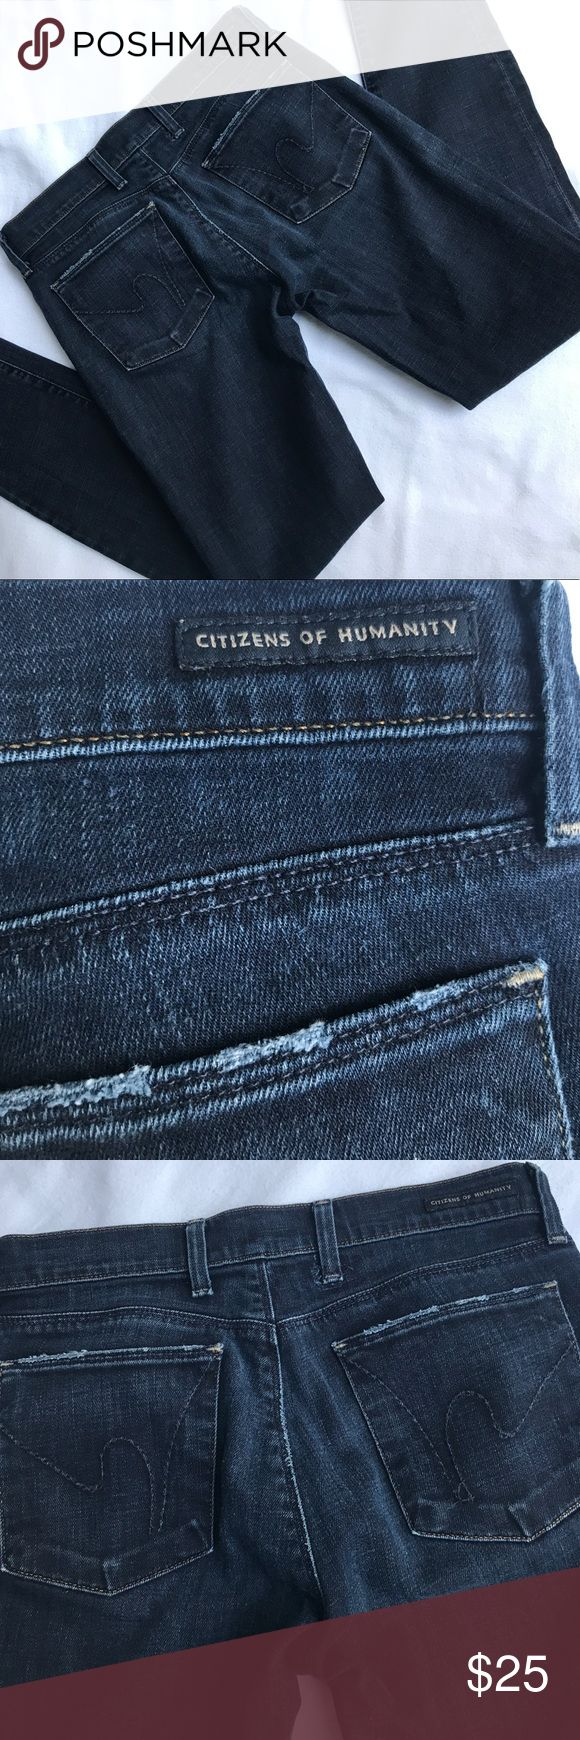 Citizens of Humanity Women's Jeans Size 27 Made of 98% cotton and 2% Elastane. A women's size 27 and in good condition. Only flaw is that the buckle loop in the back had to be fix but it isn't noticeable unless you look at these jeans inside out where you can see the patch put to fix it by the cleaners (shown above in images). These are low waist skinny leg stretch jeans. Have any questions you can simply ask by commenting below. They do it fit me anymore and that's reason I'm selling…